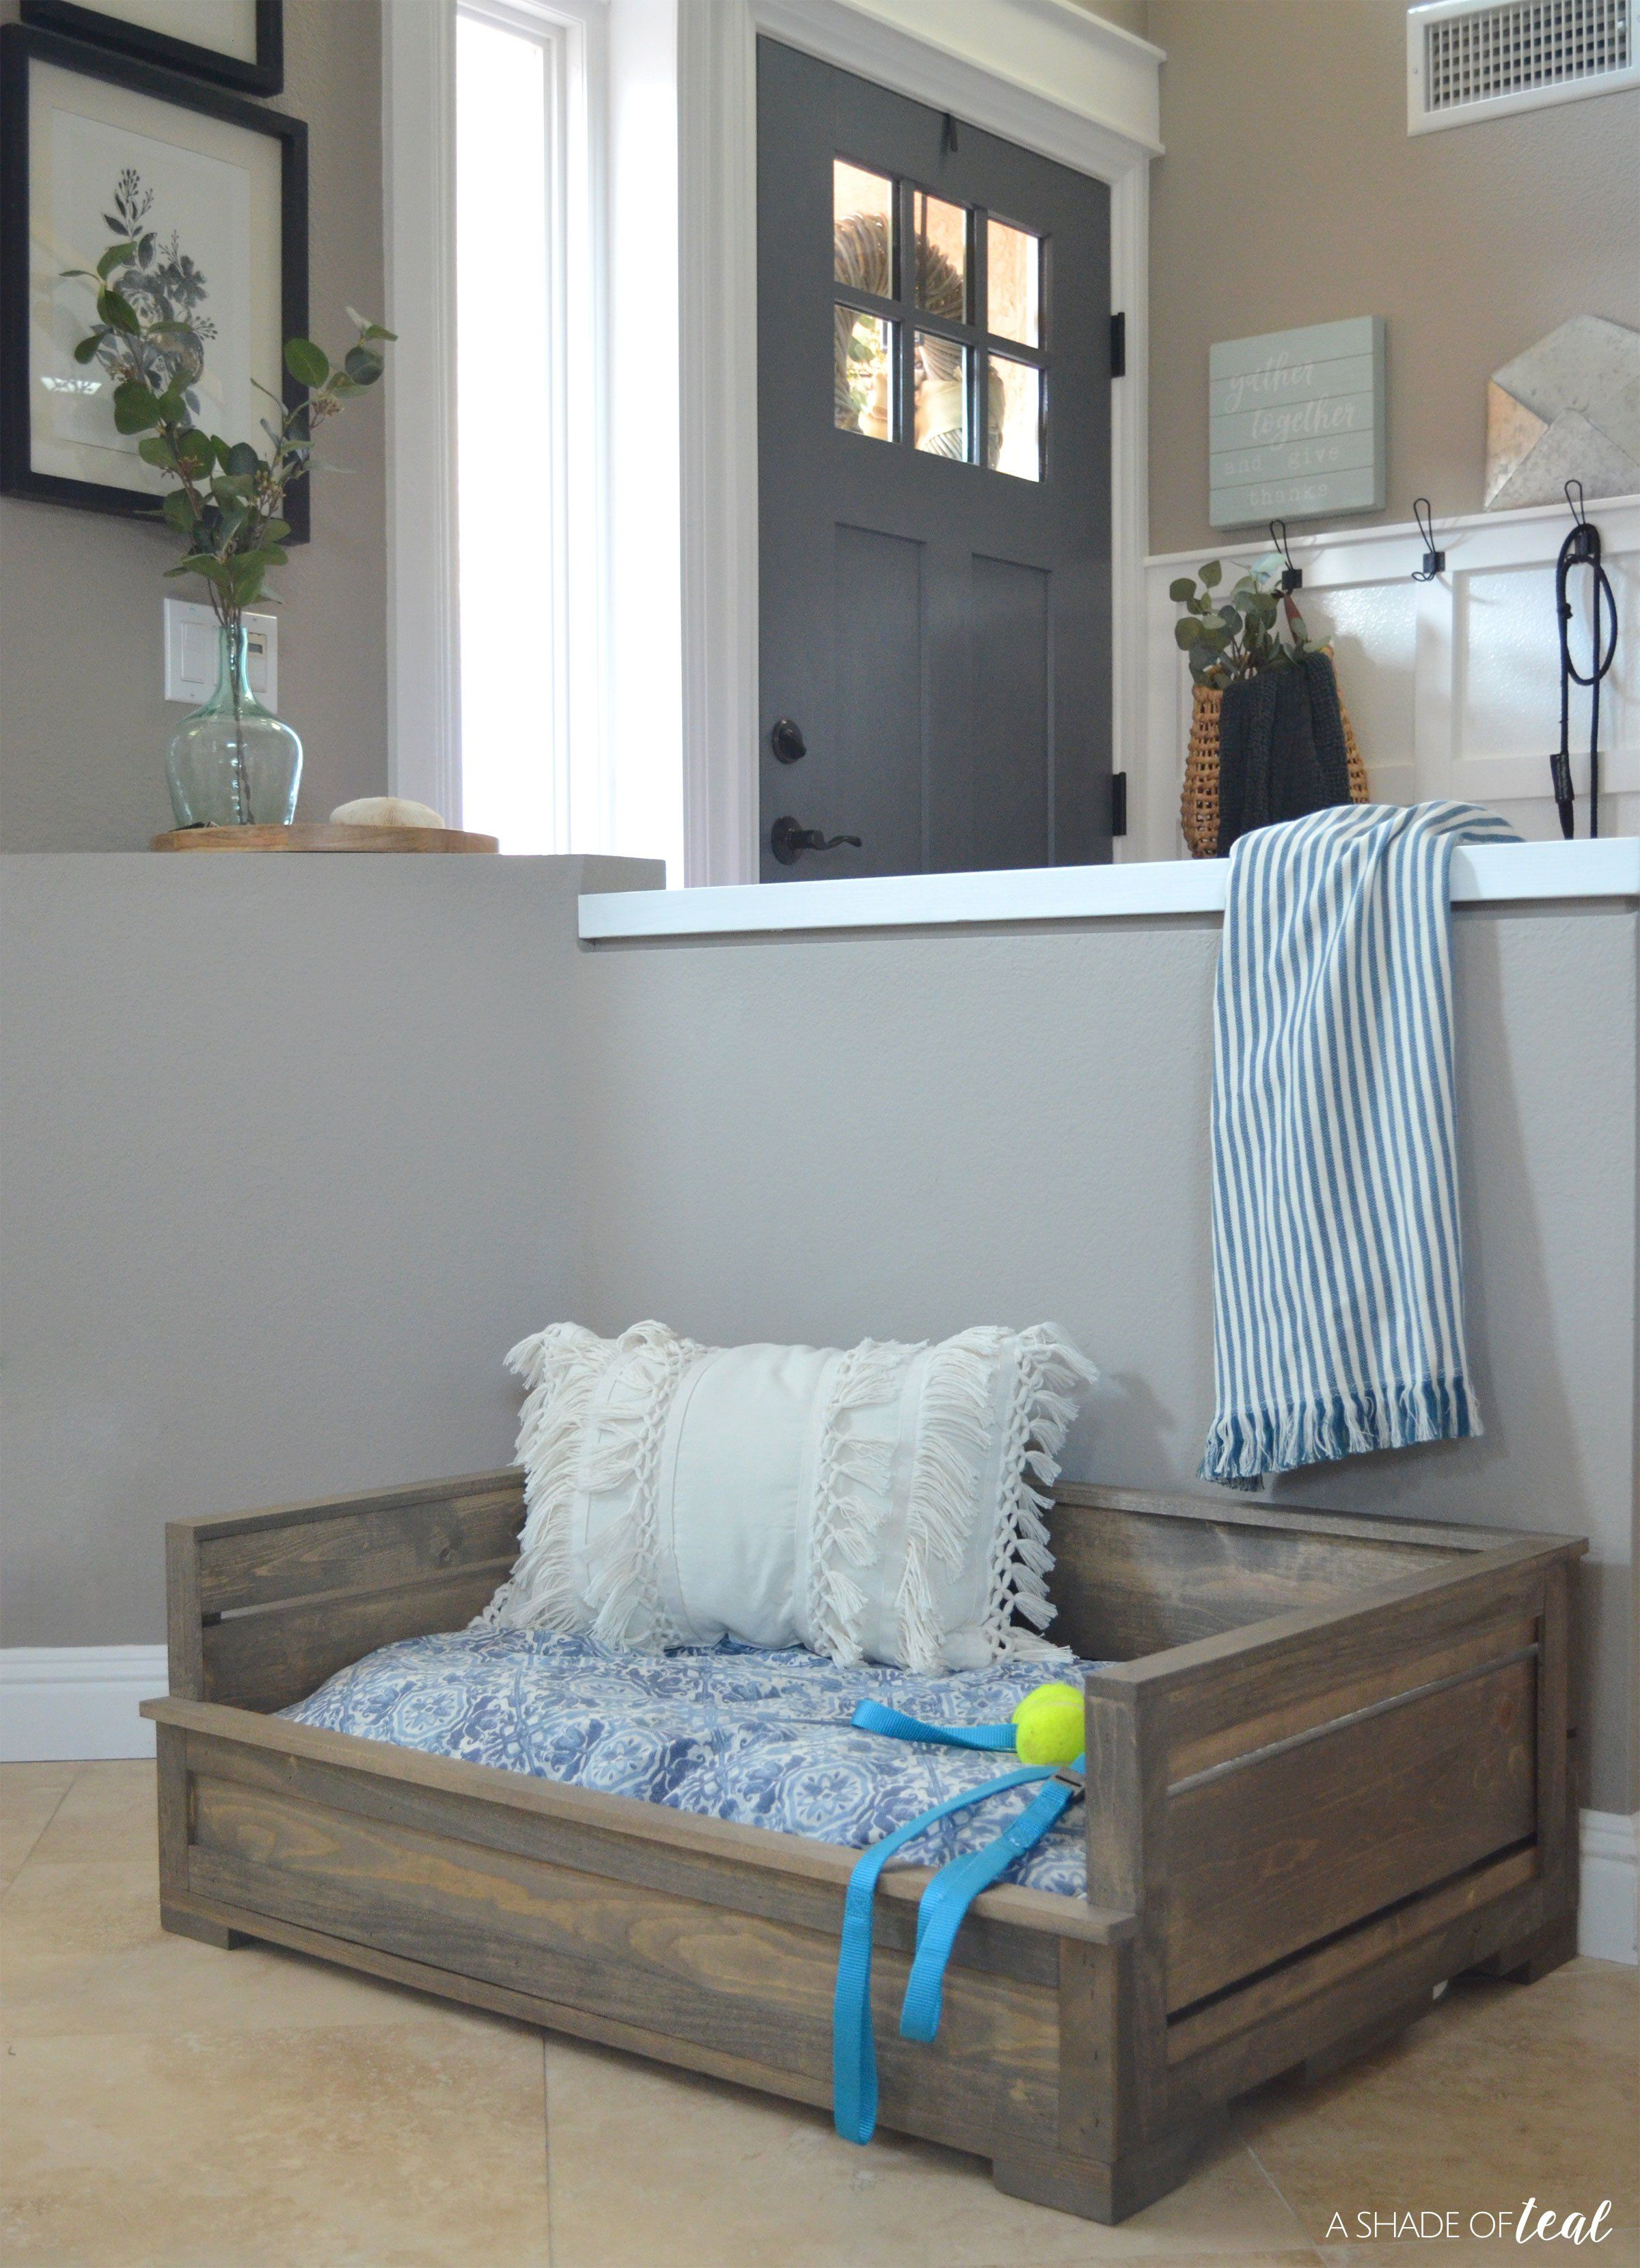 How to Build a Rustic Wood Dog Bed & How to Build a Rustic Wood Dog Bed | ! DIY- HOUSE BEAUTIFUL ...